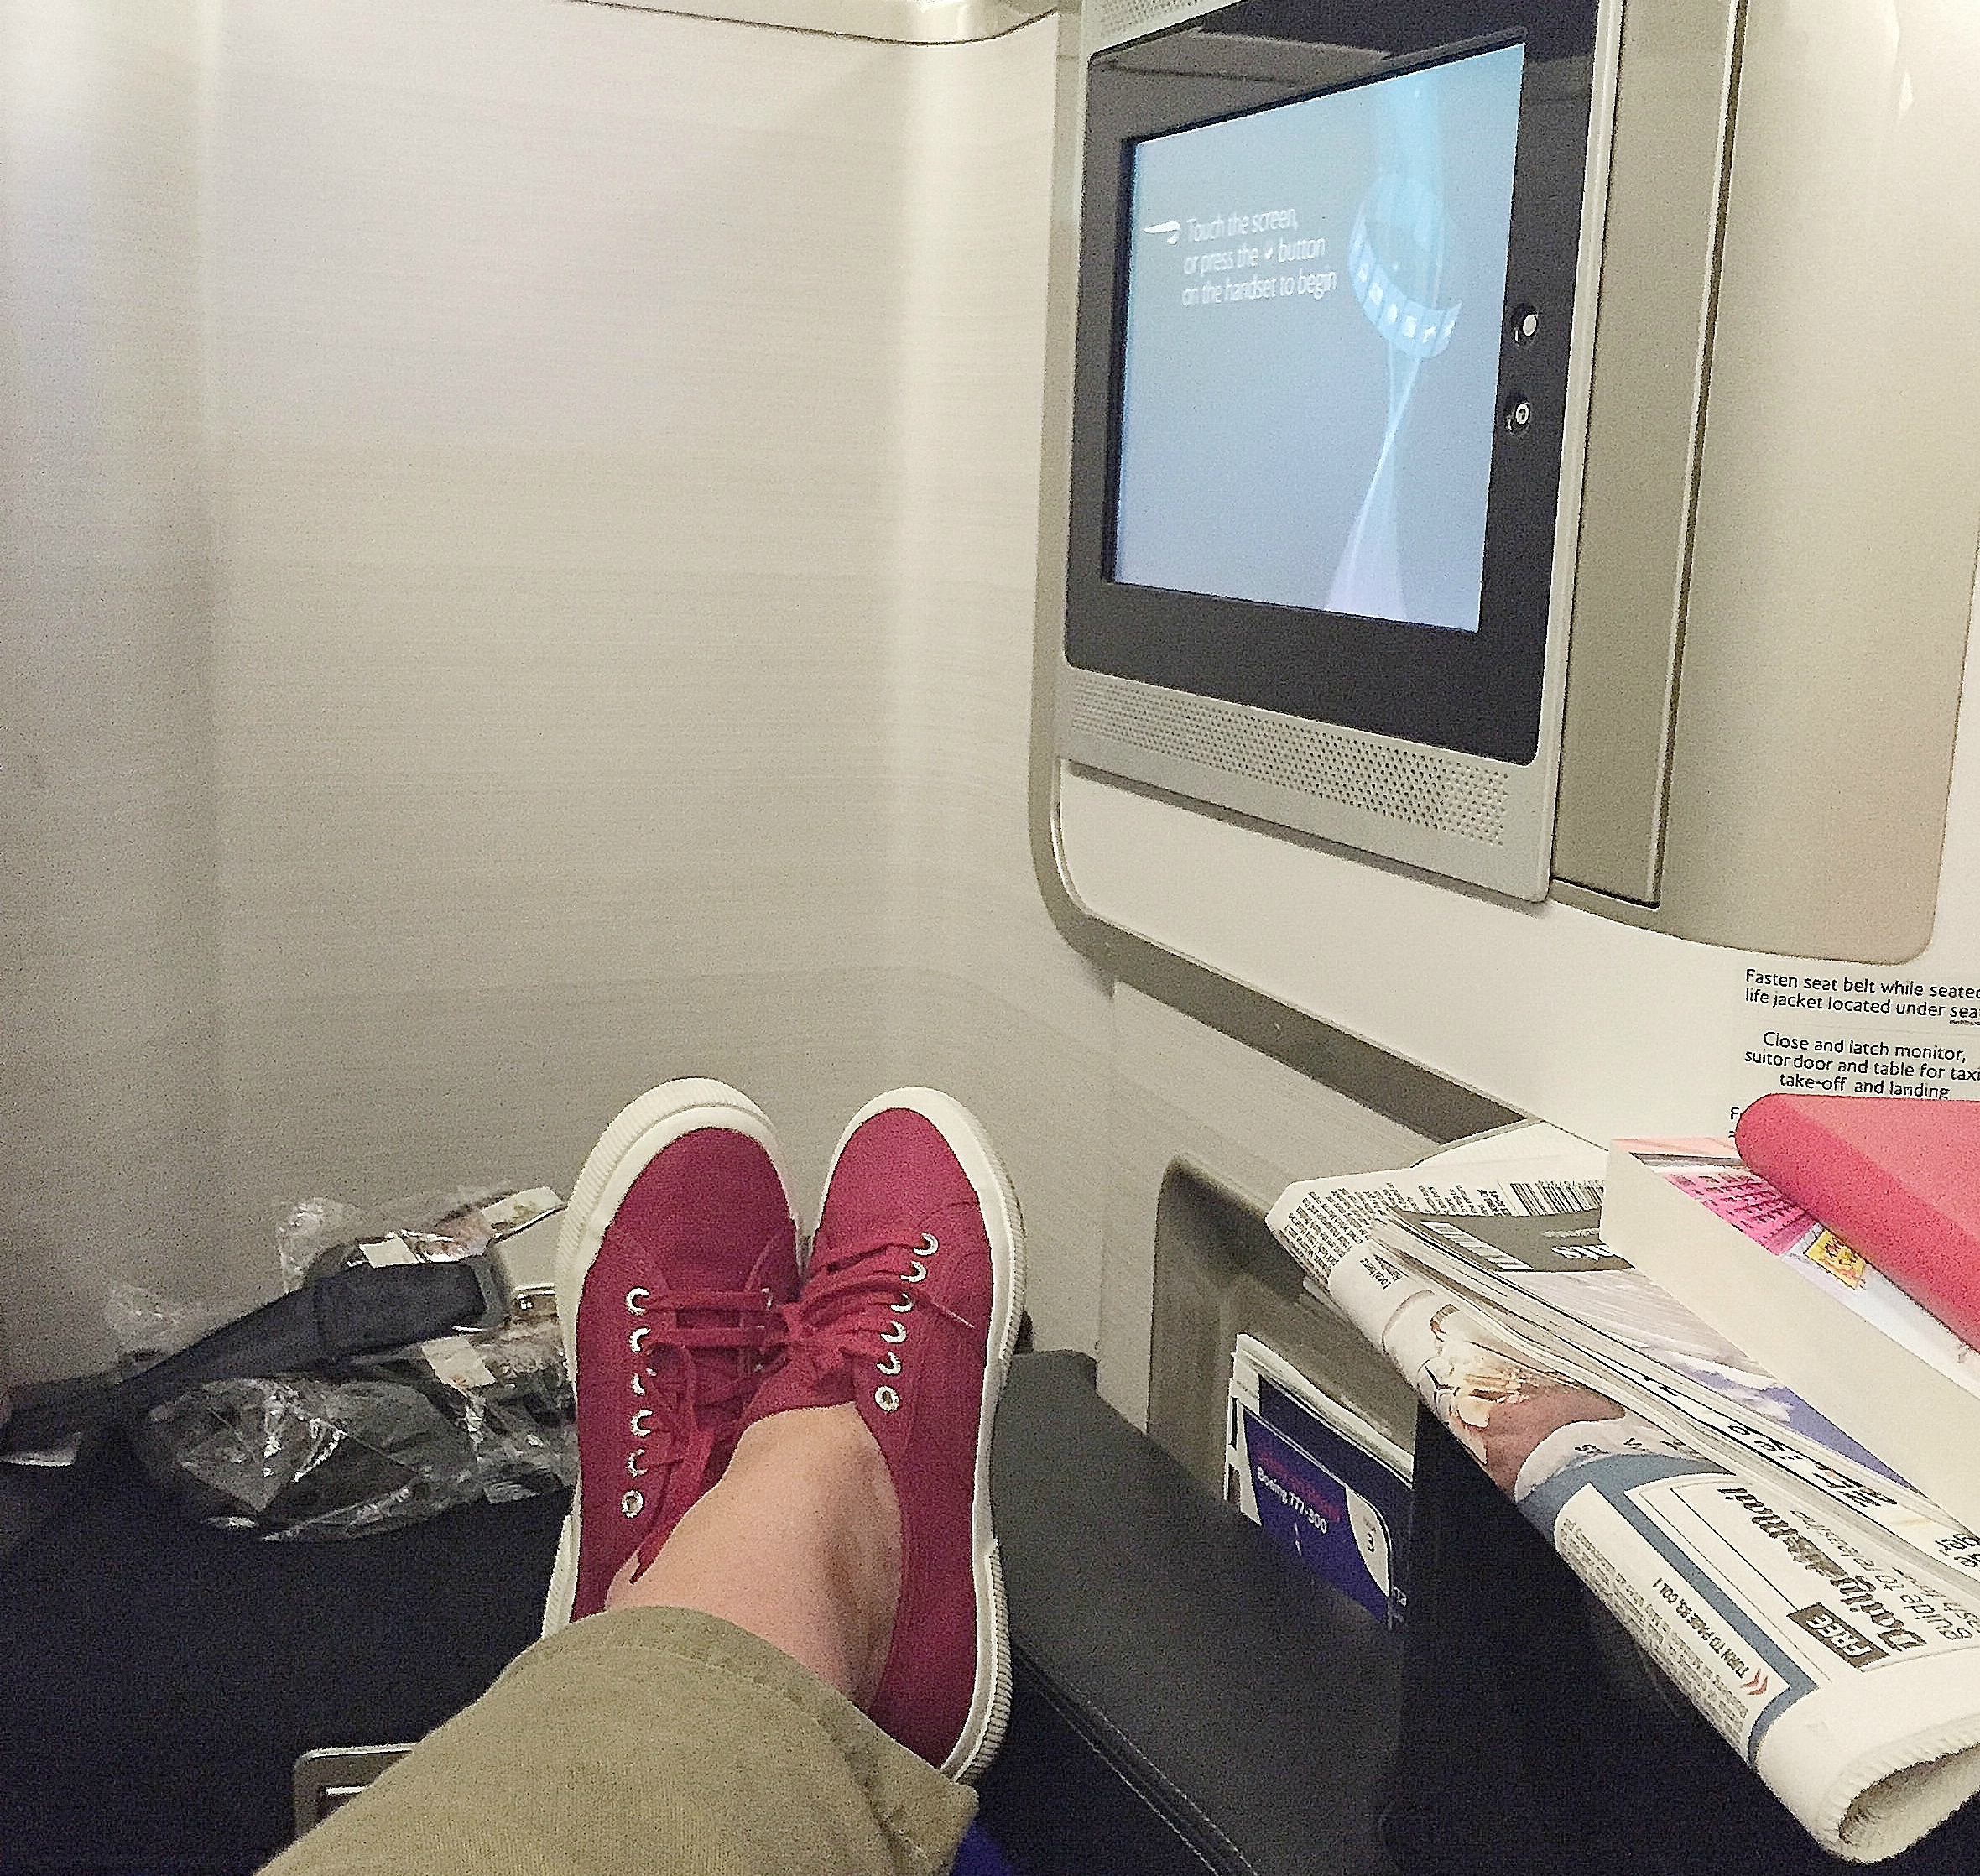 How to score yourself cheap first class flights with ba for only 500 how to score yourself cheap first class flights with british airways for only 500 reheart Choice Image